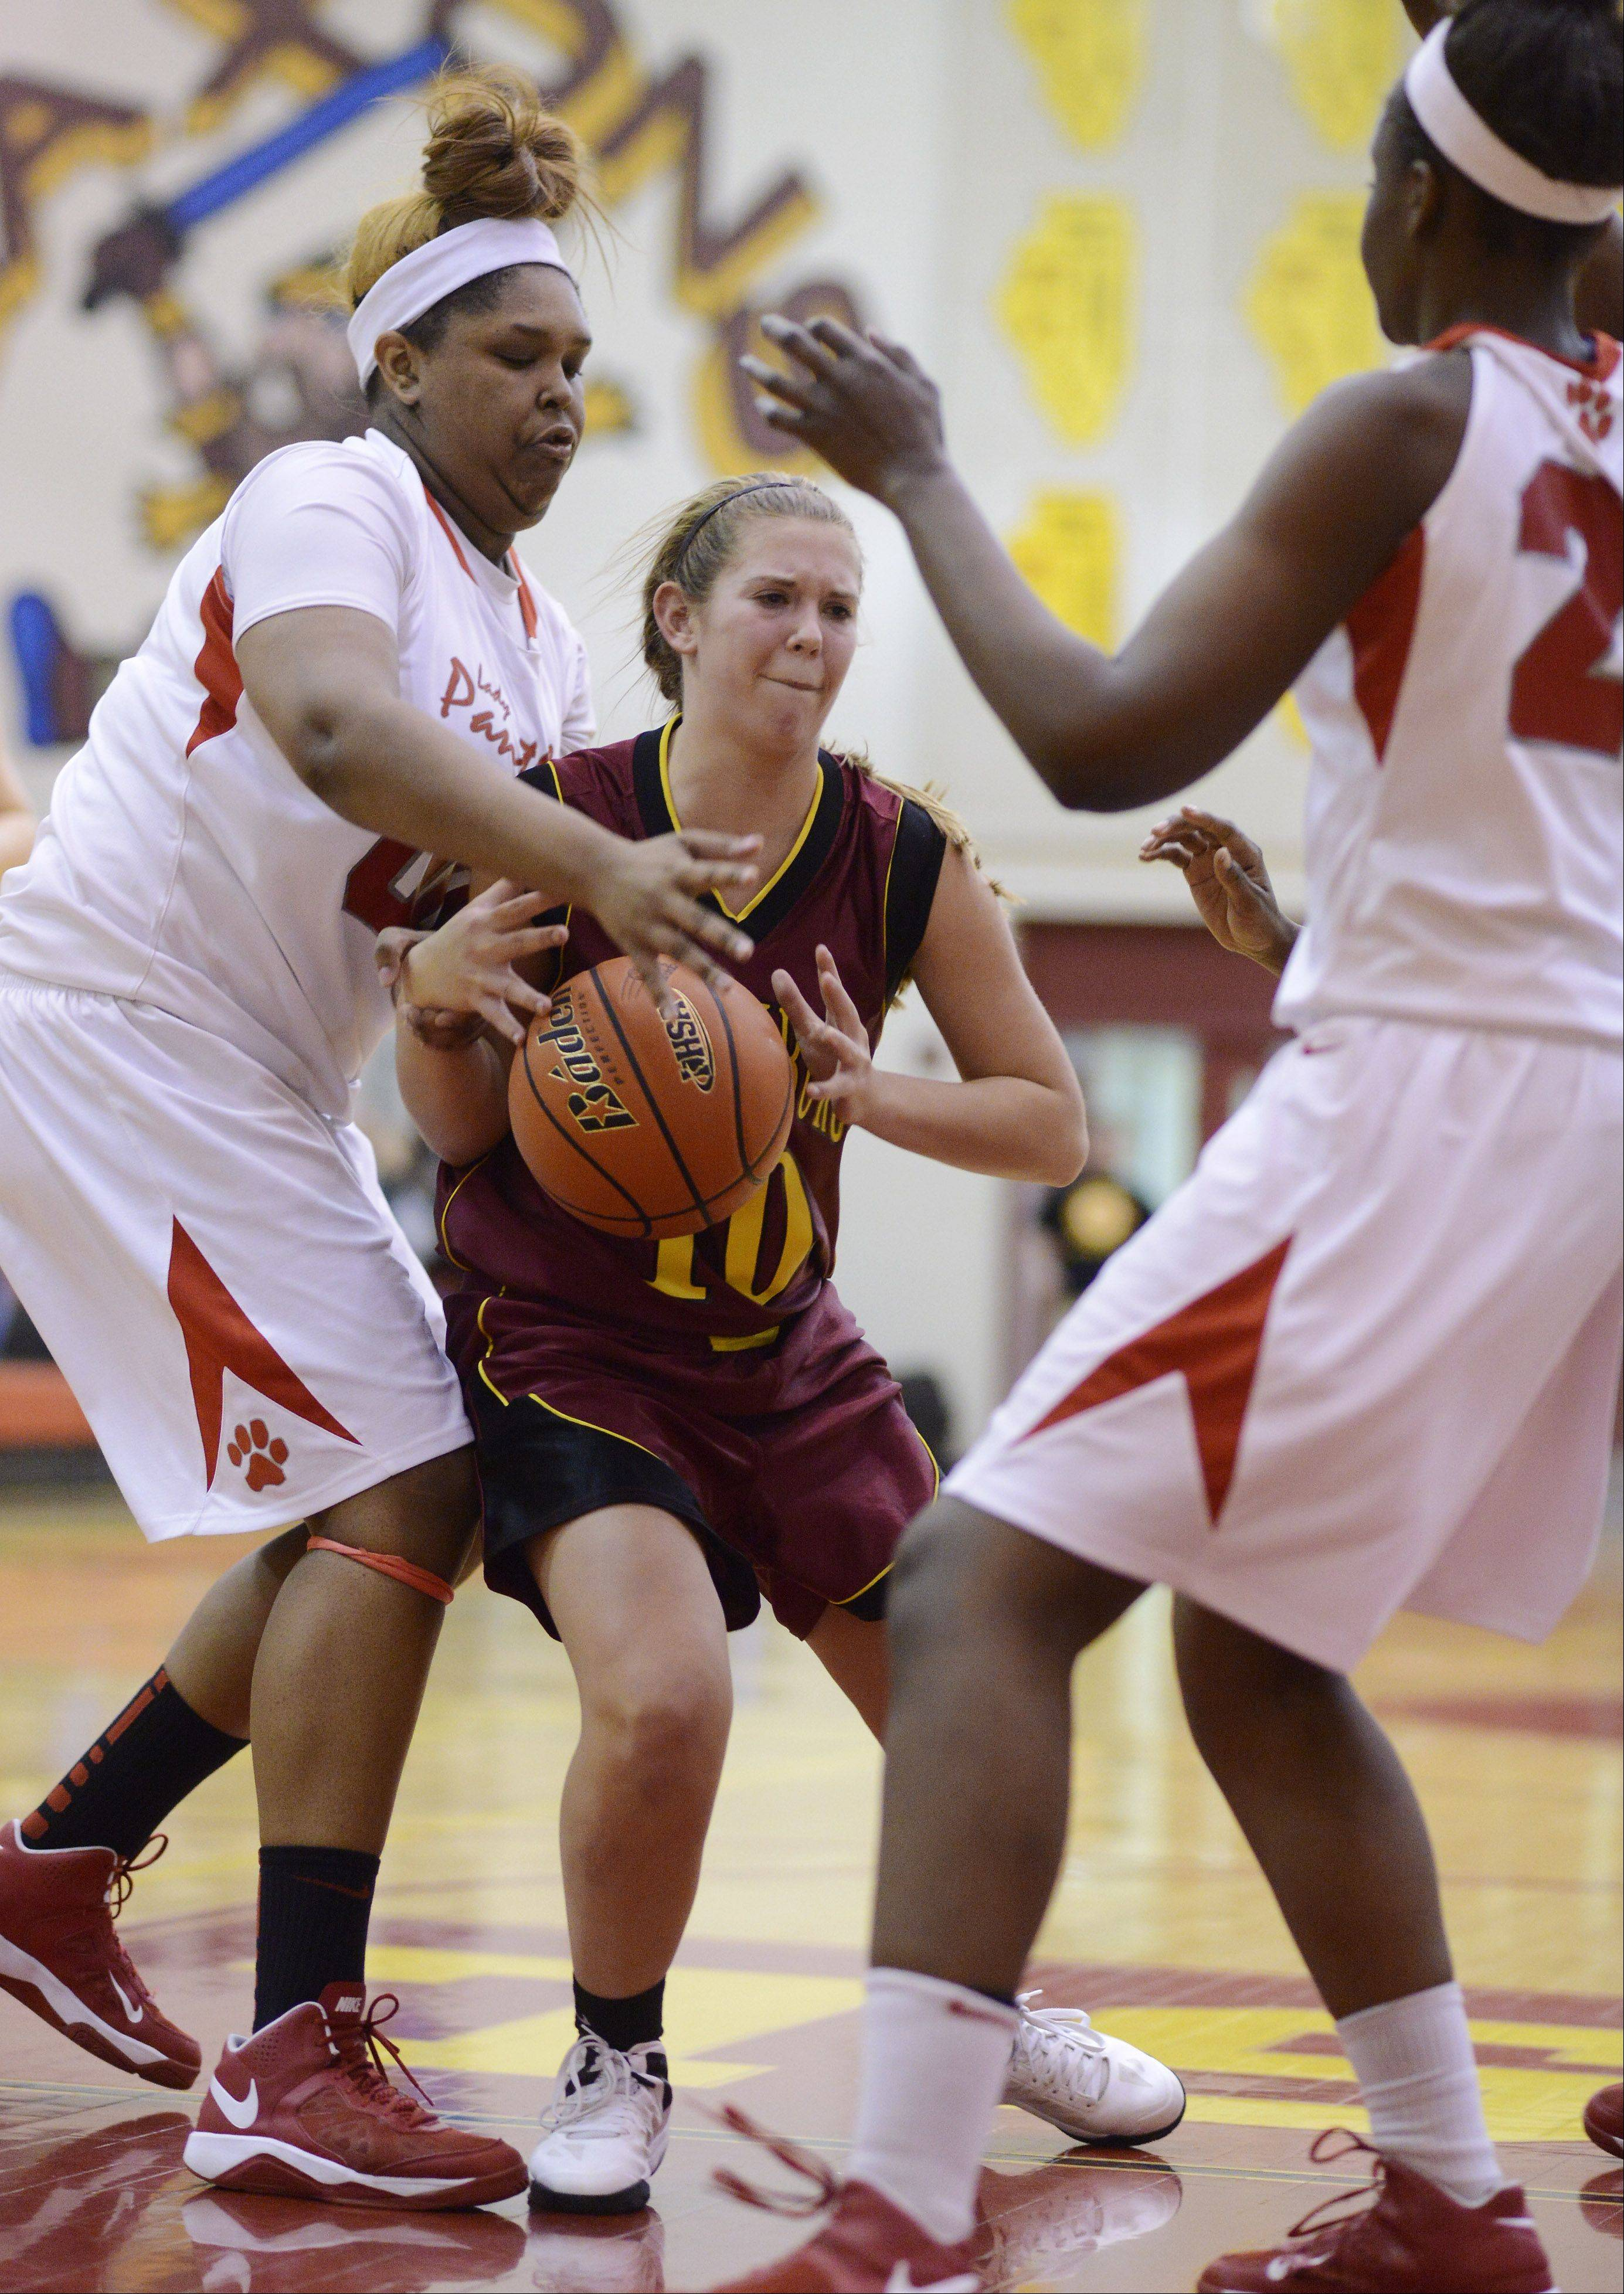 Schaumburg's Riley Williams, middle, tries to hang onto the ball after Proviso West defenders Taylor Pate, left, and Jade Wright fill the lane during Tuesday's Class 4A regional semifinal at Schaumburg.